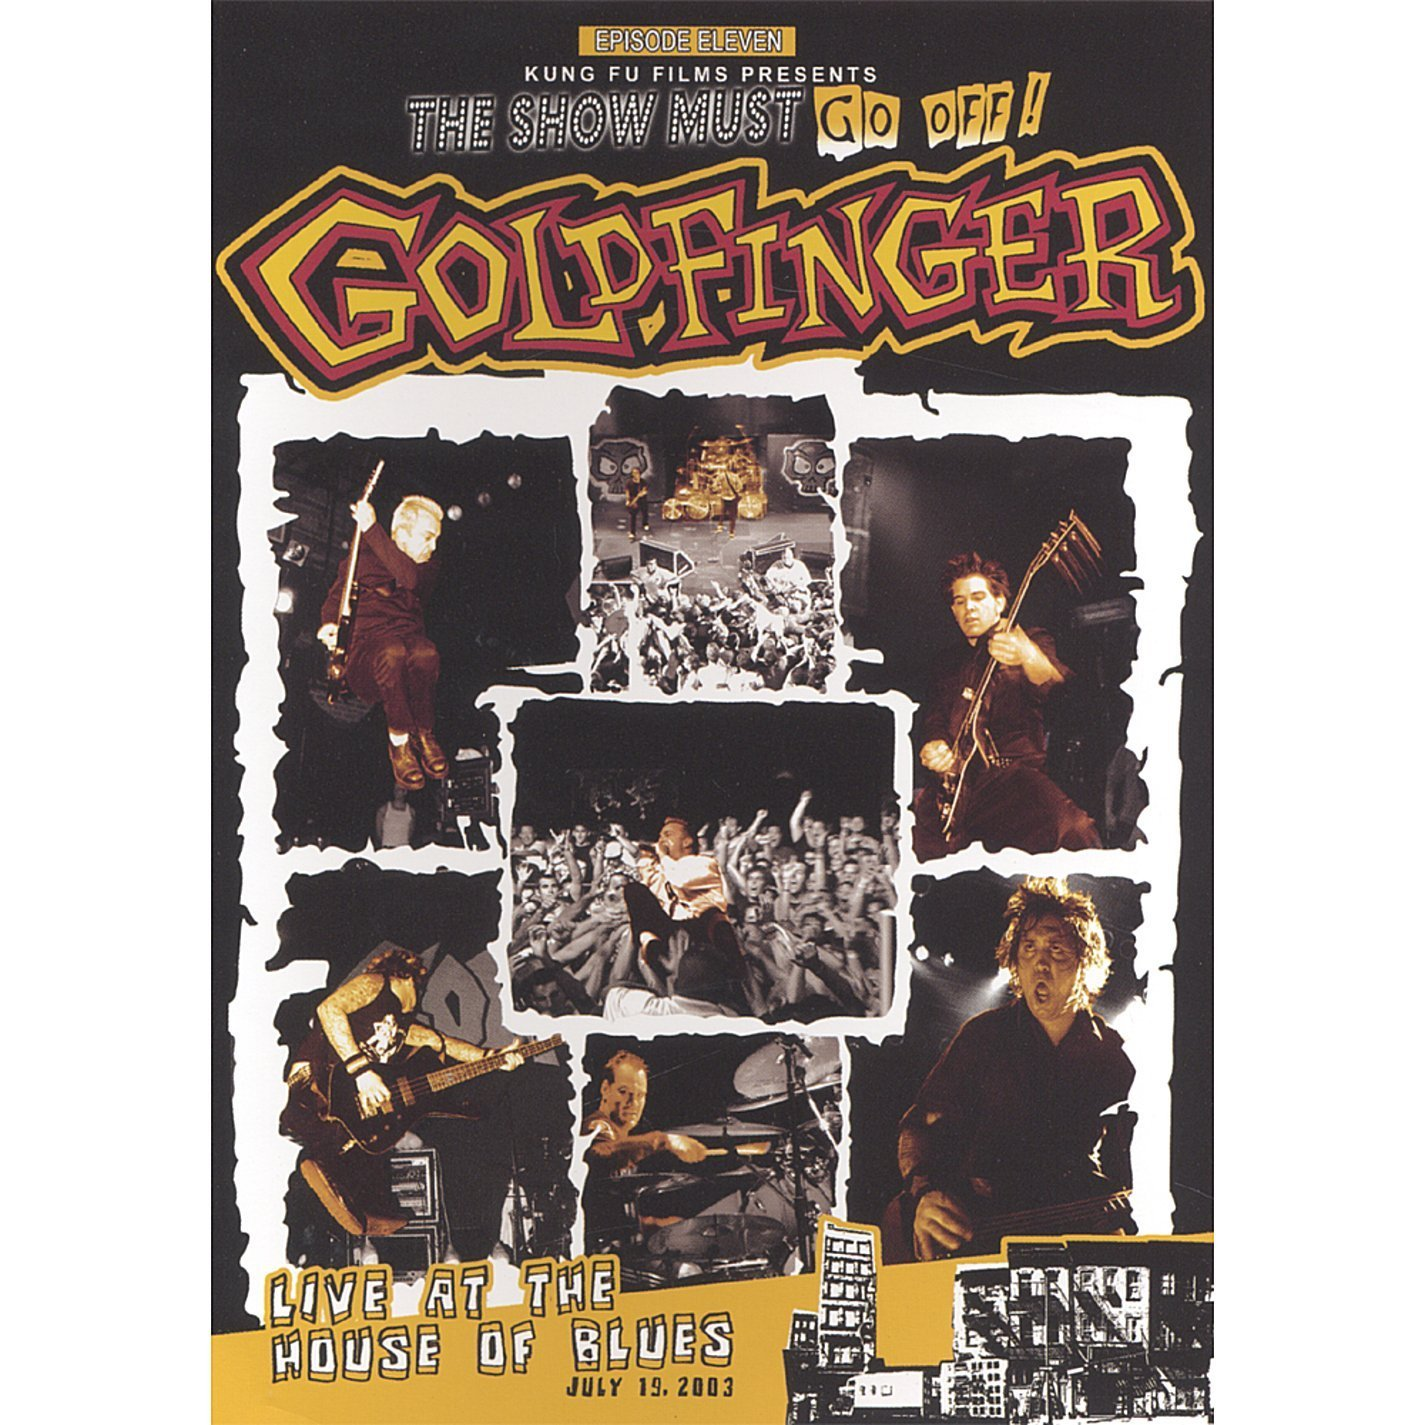 amazon com goldfinger live at the house of blues goldfinger amazon com goldfinger live at the house of blues goldfinger movies tv